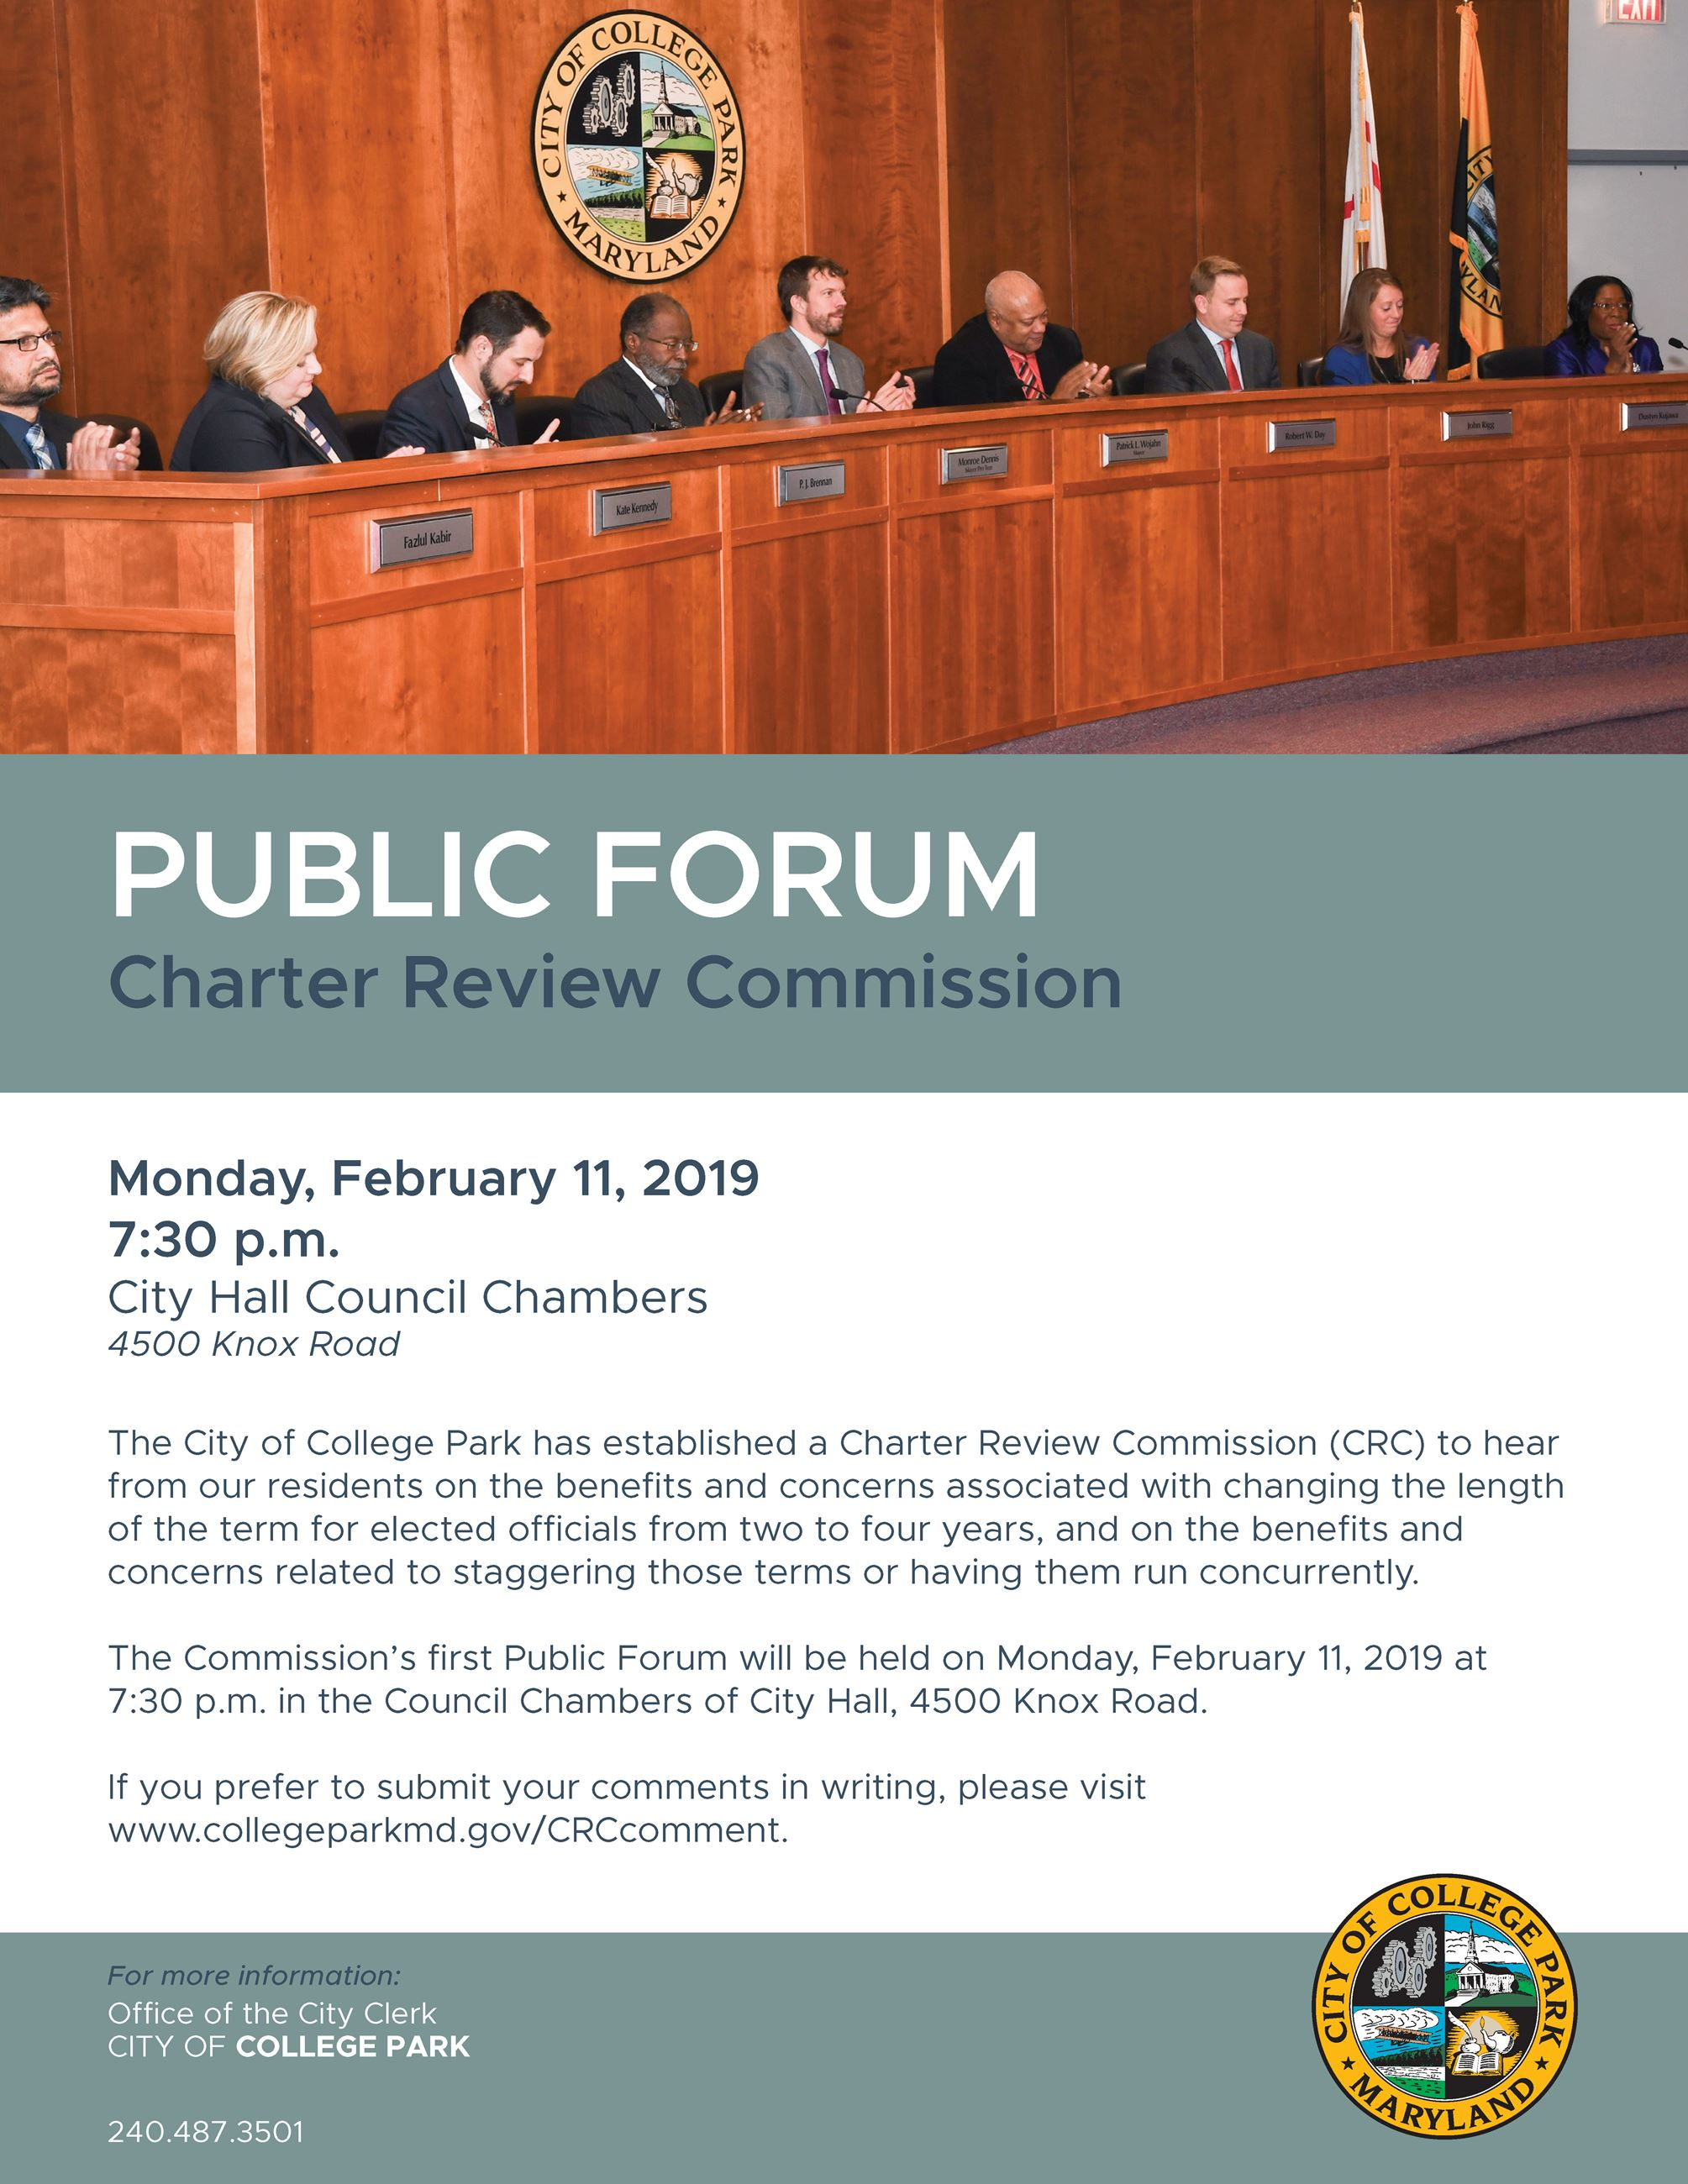 Public Forum - Charter Review Commission